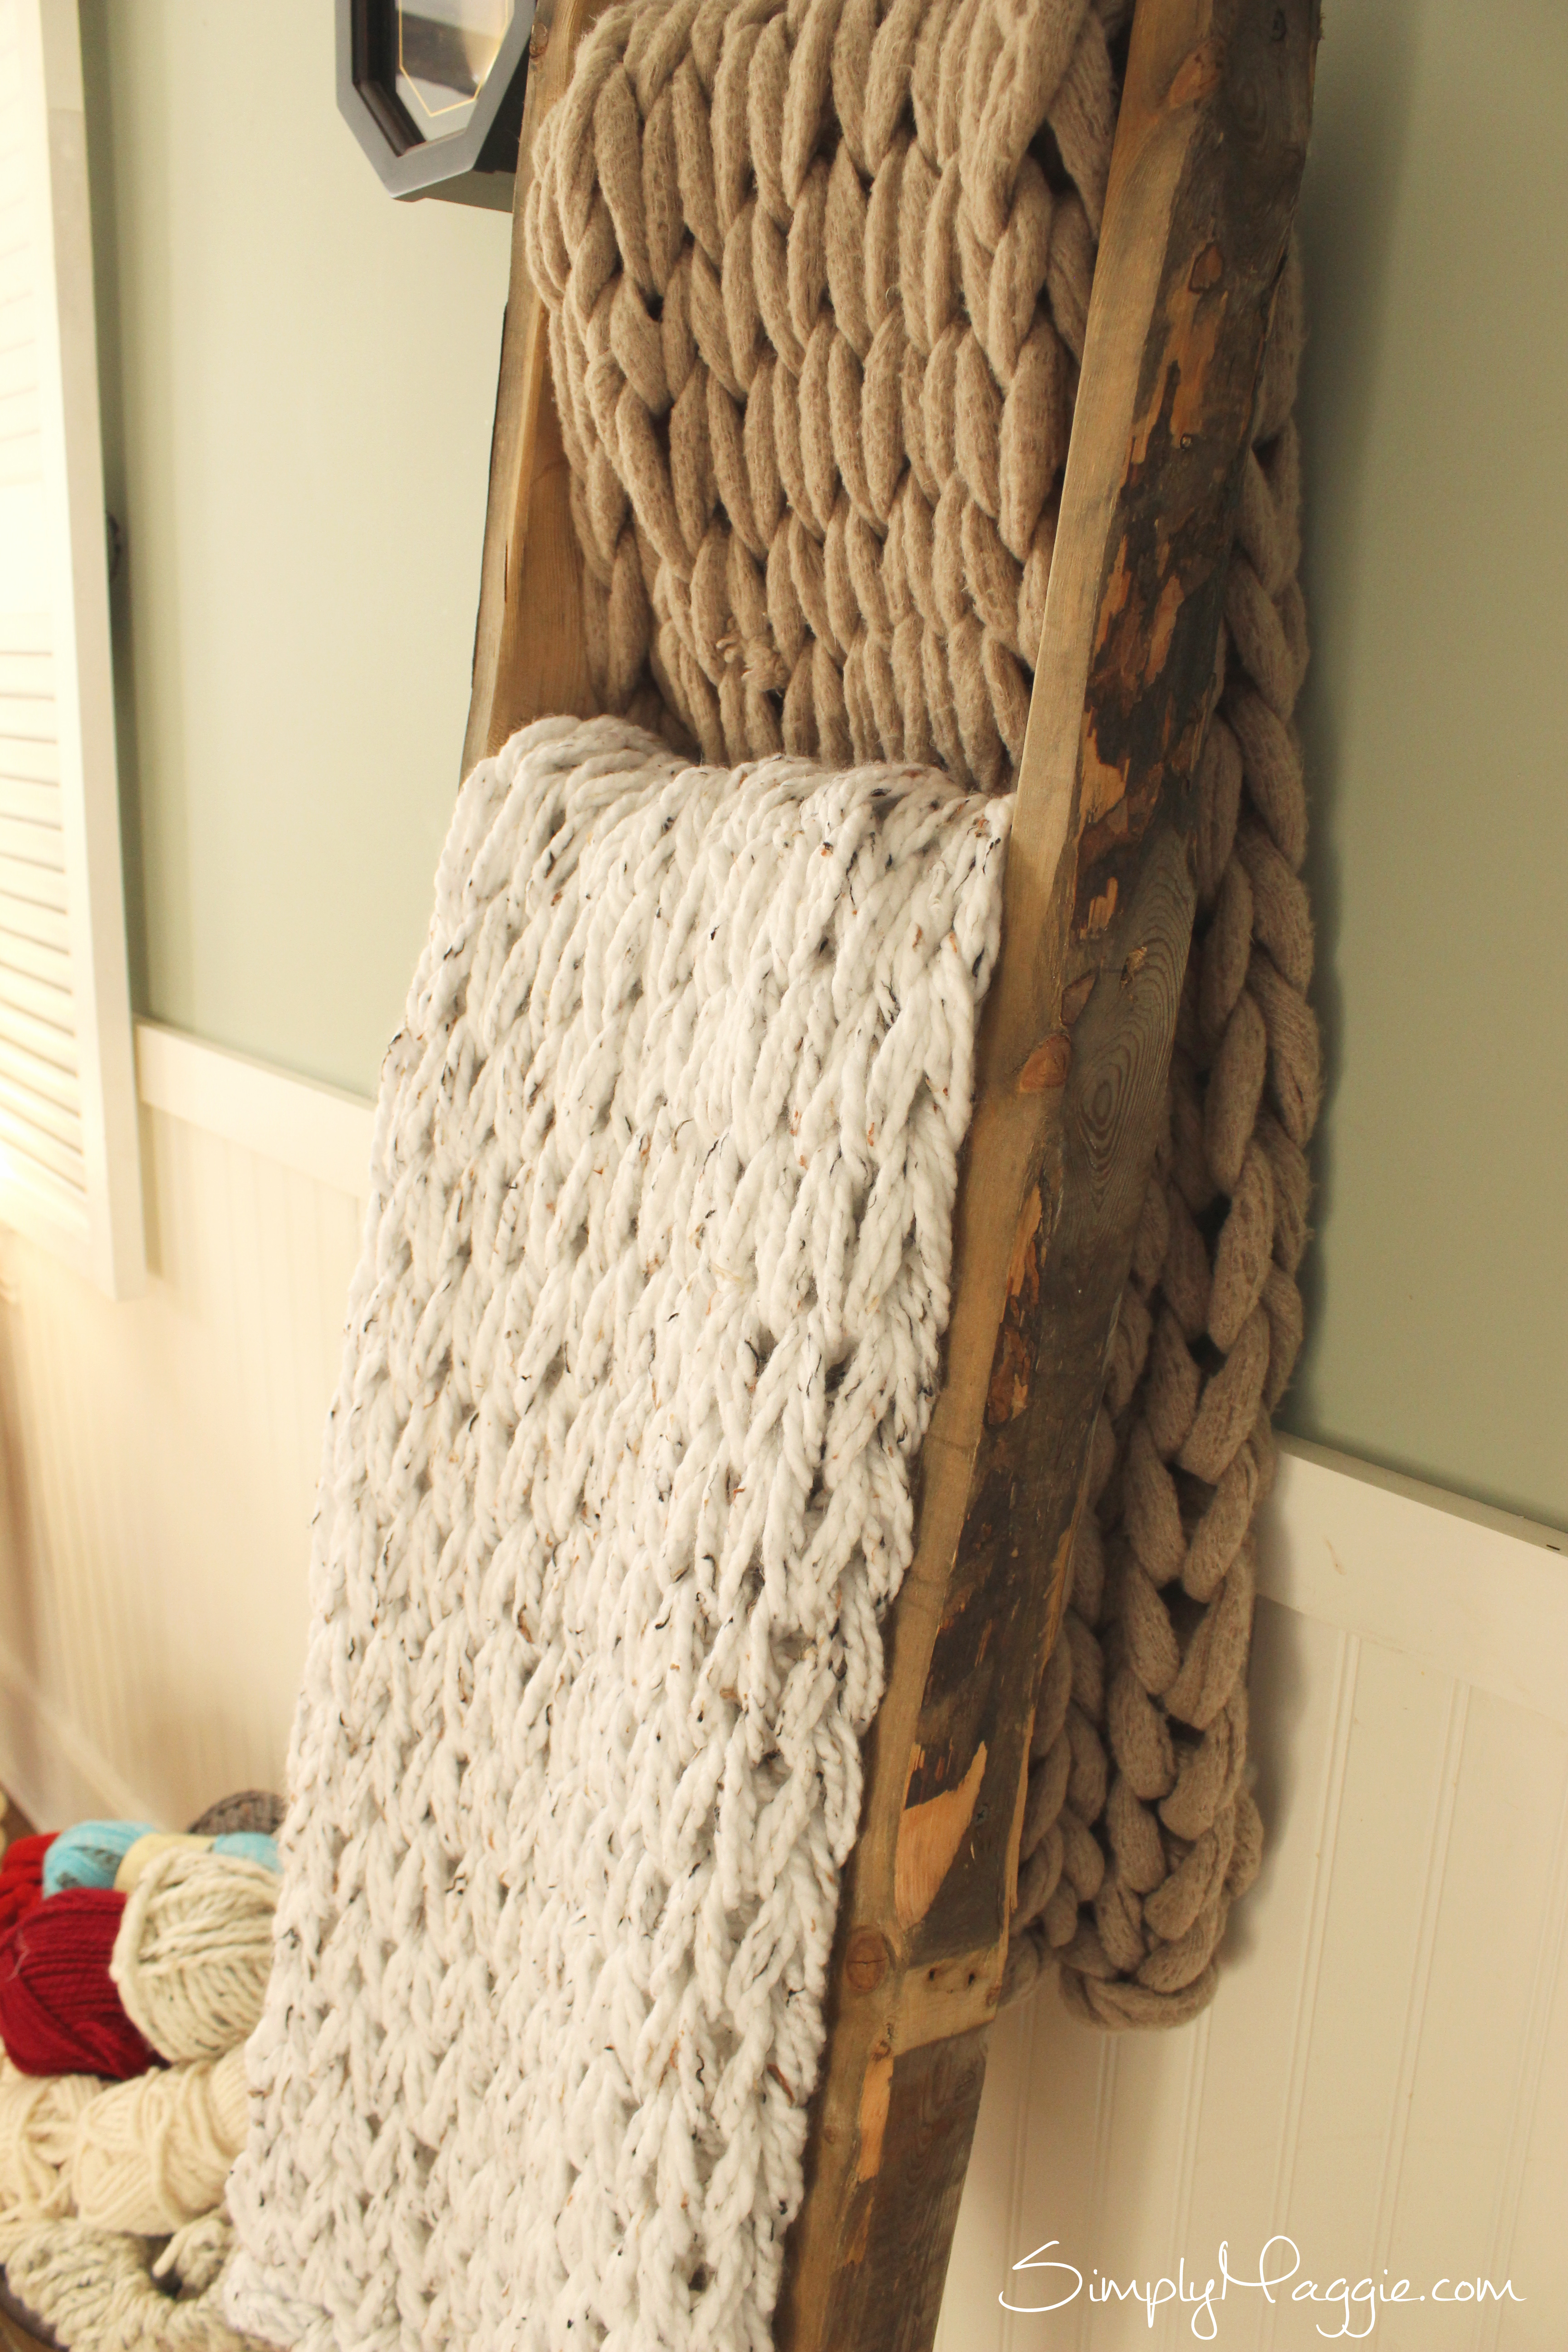 Knit a Chunky Blanket in 1 Hour with Arm knitting  | SimplyMaggie com